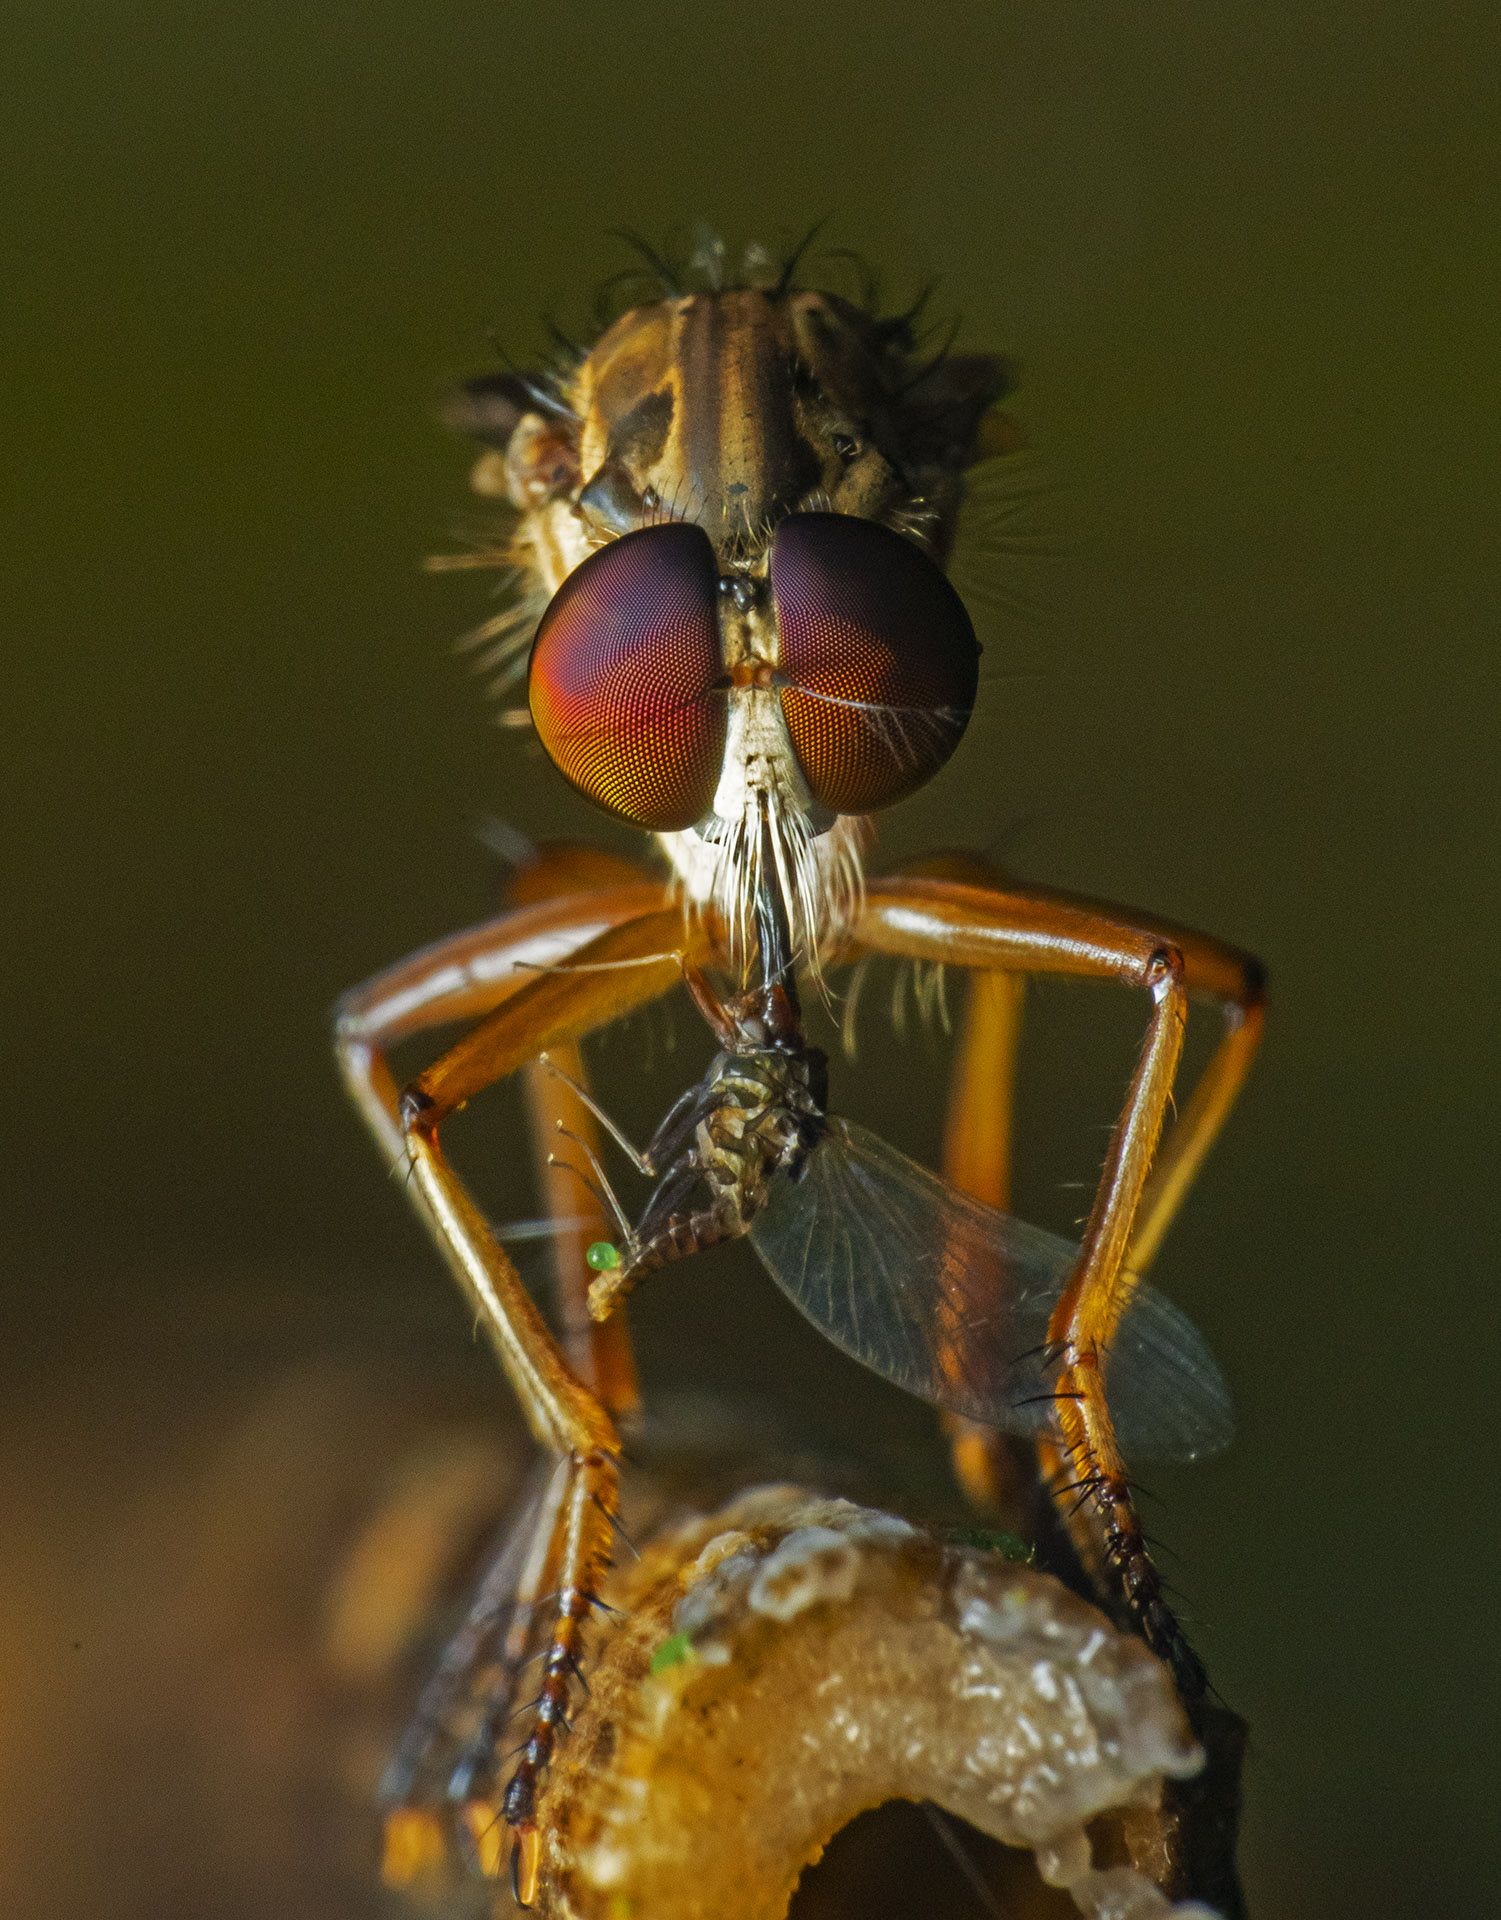 There are several such fascinating species in Agumbe that live intriguing lives. With its stout built, swift flight and special mouthparts, the robberfly is an agile predator known to feed on varieties of insects by catching them in flight. With their specialised mouthparts, they first stab their prey, inject toxin to kill, liquify its flesh and finally suck their slimy meal.